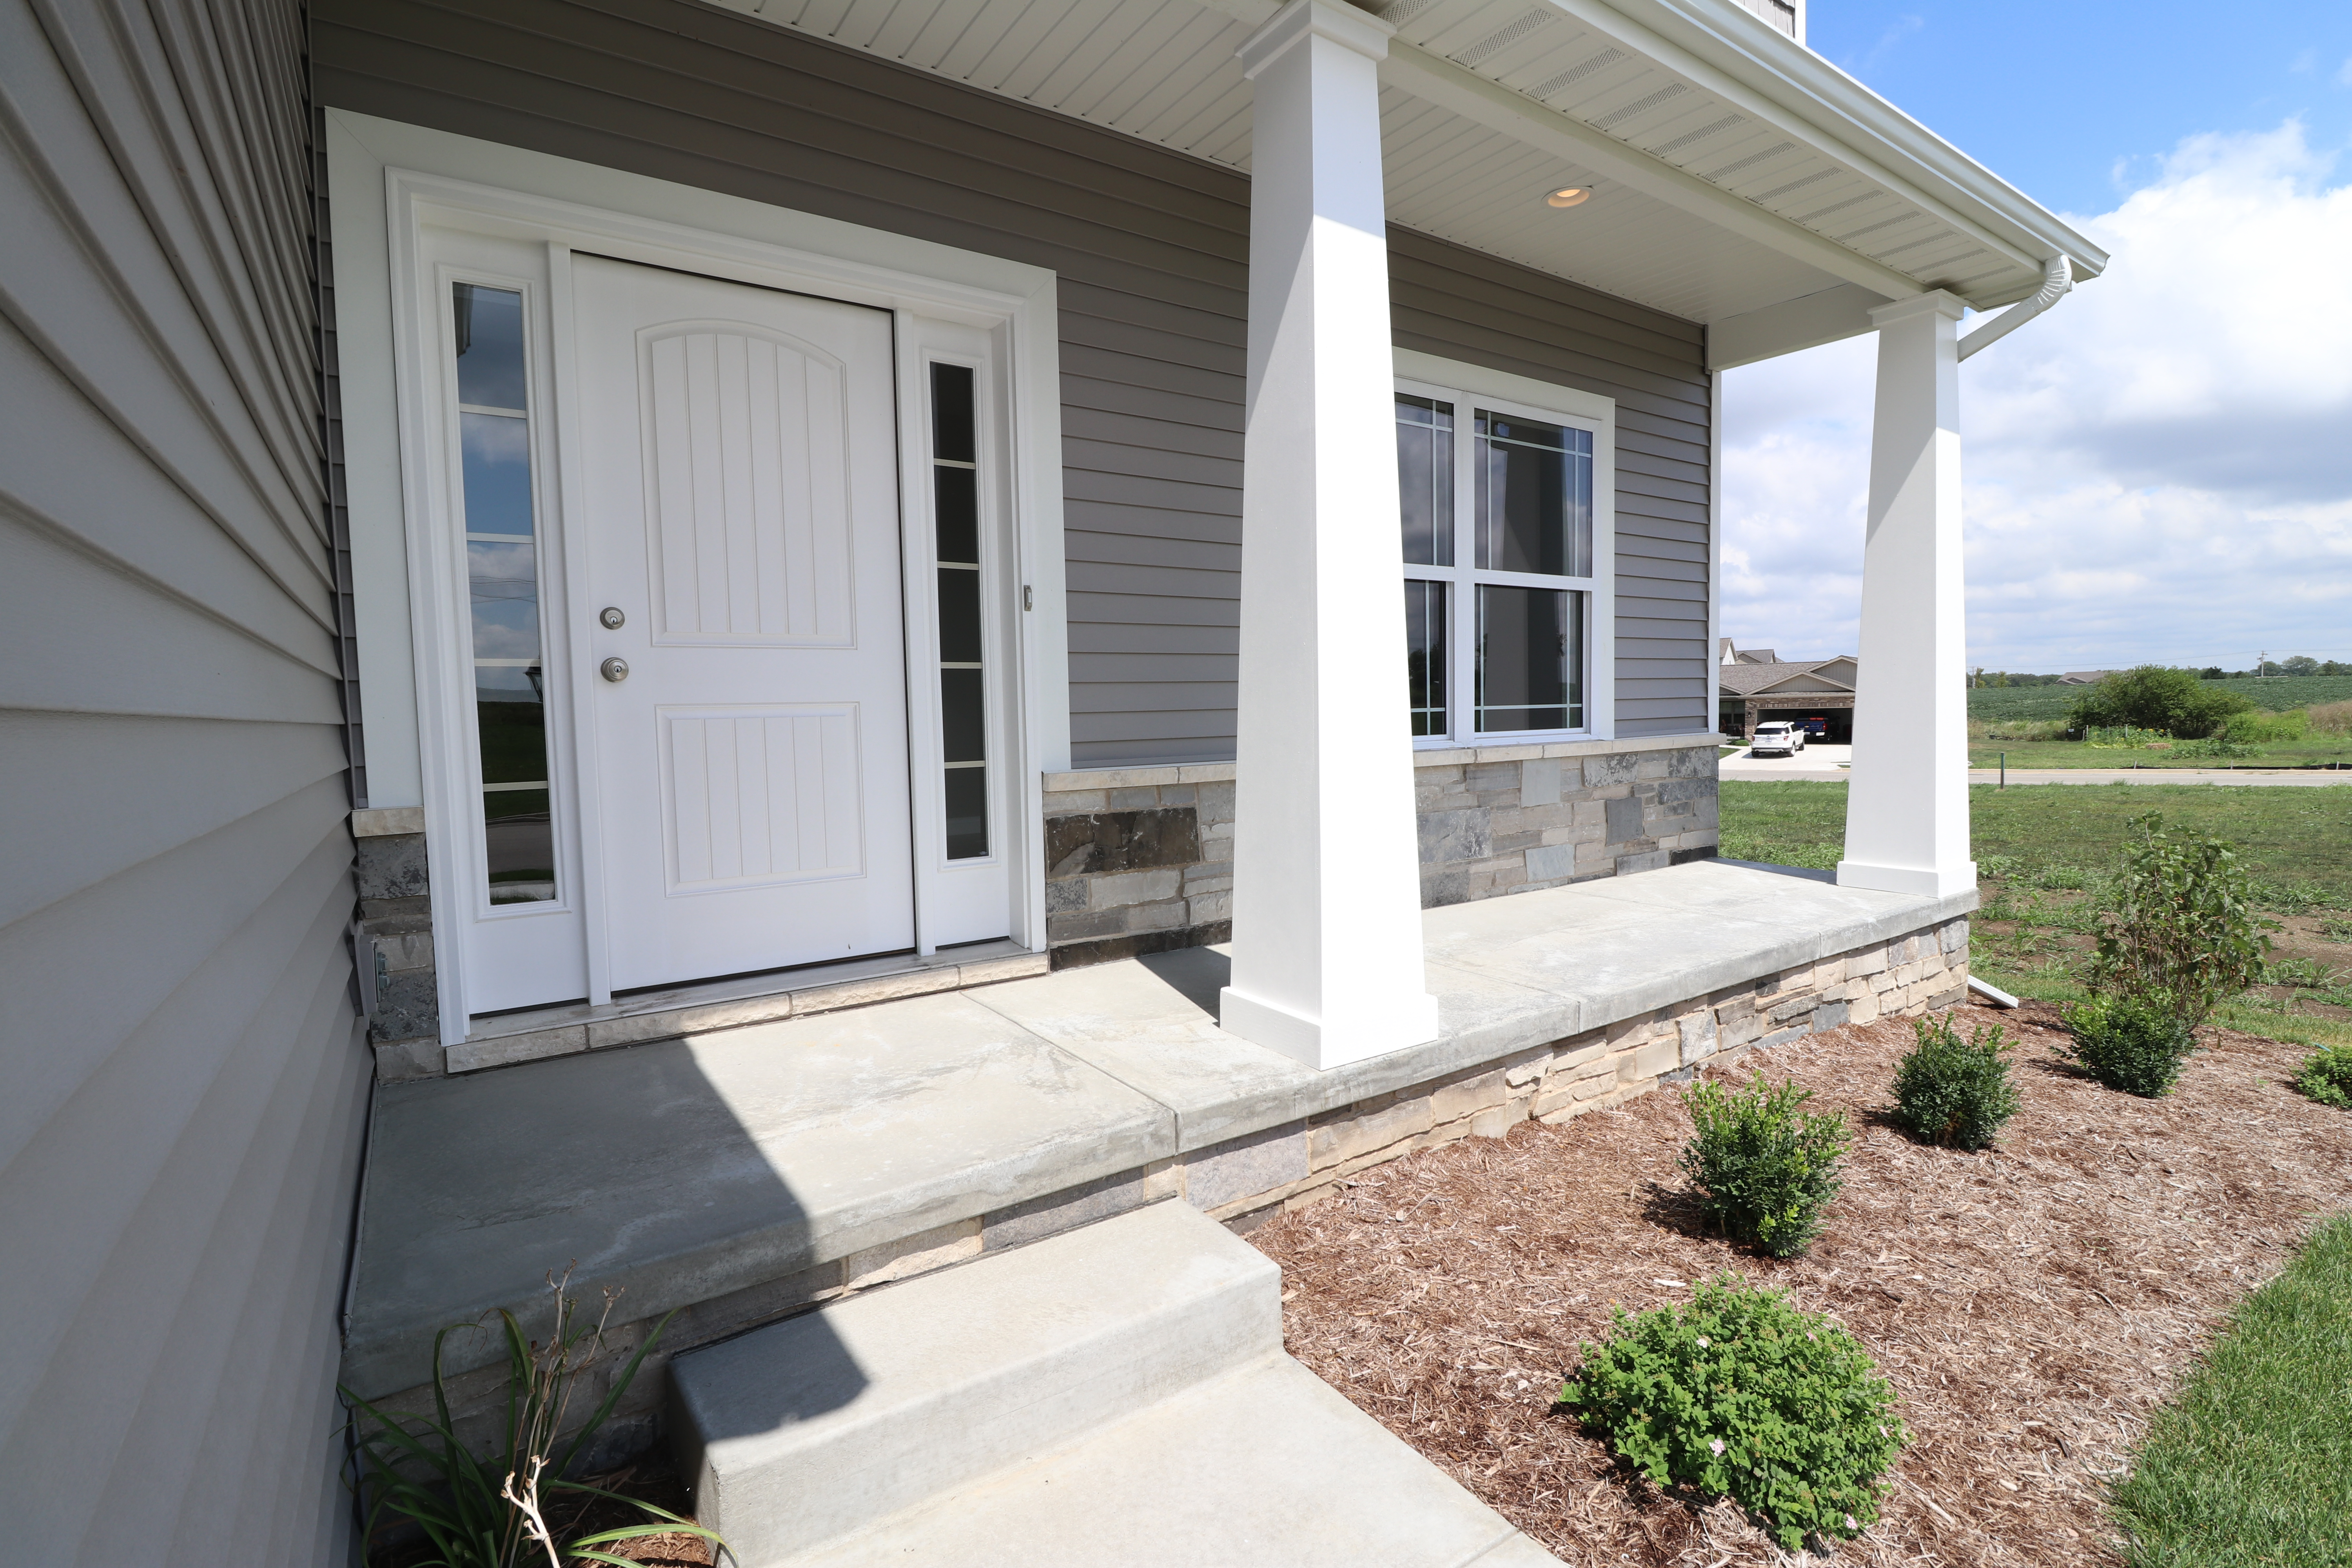 House for sale in the Dunlap peoria area front porch